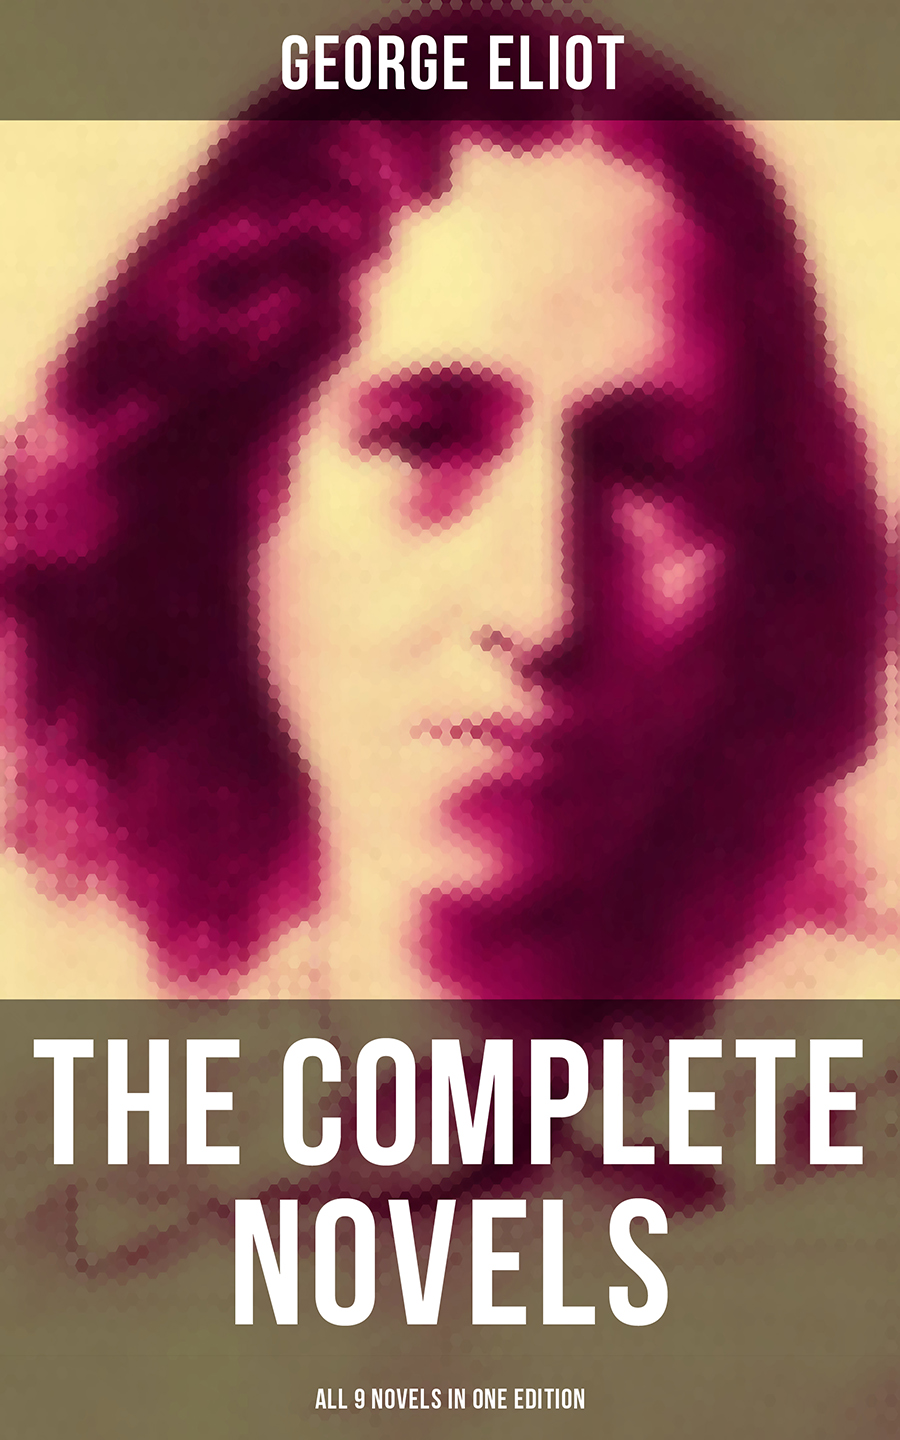 George Eliot The Complete Novels of George Eliot - All 9 Novels in One Edition цена